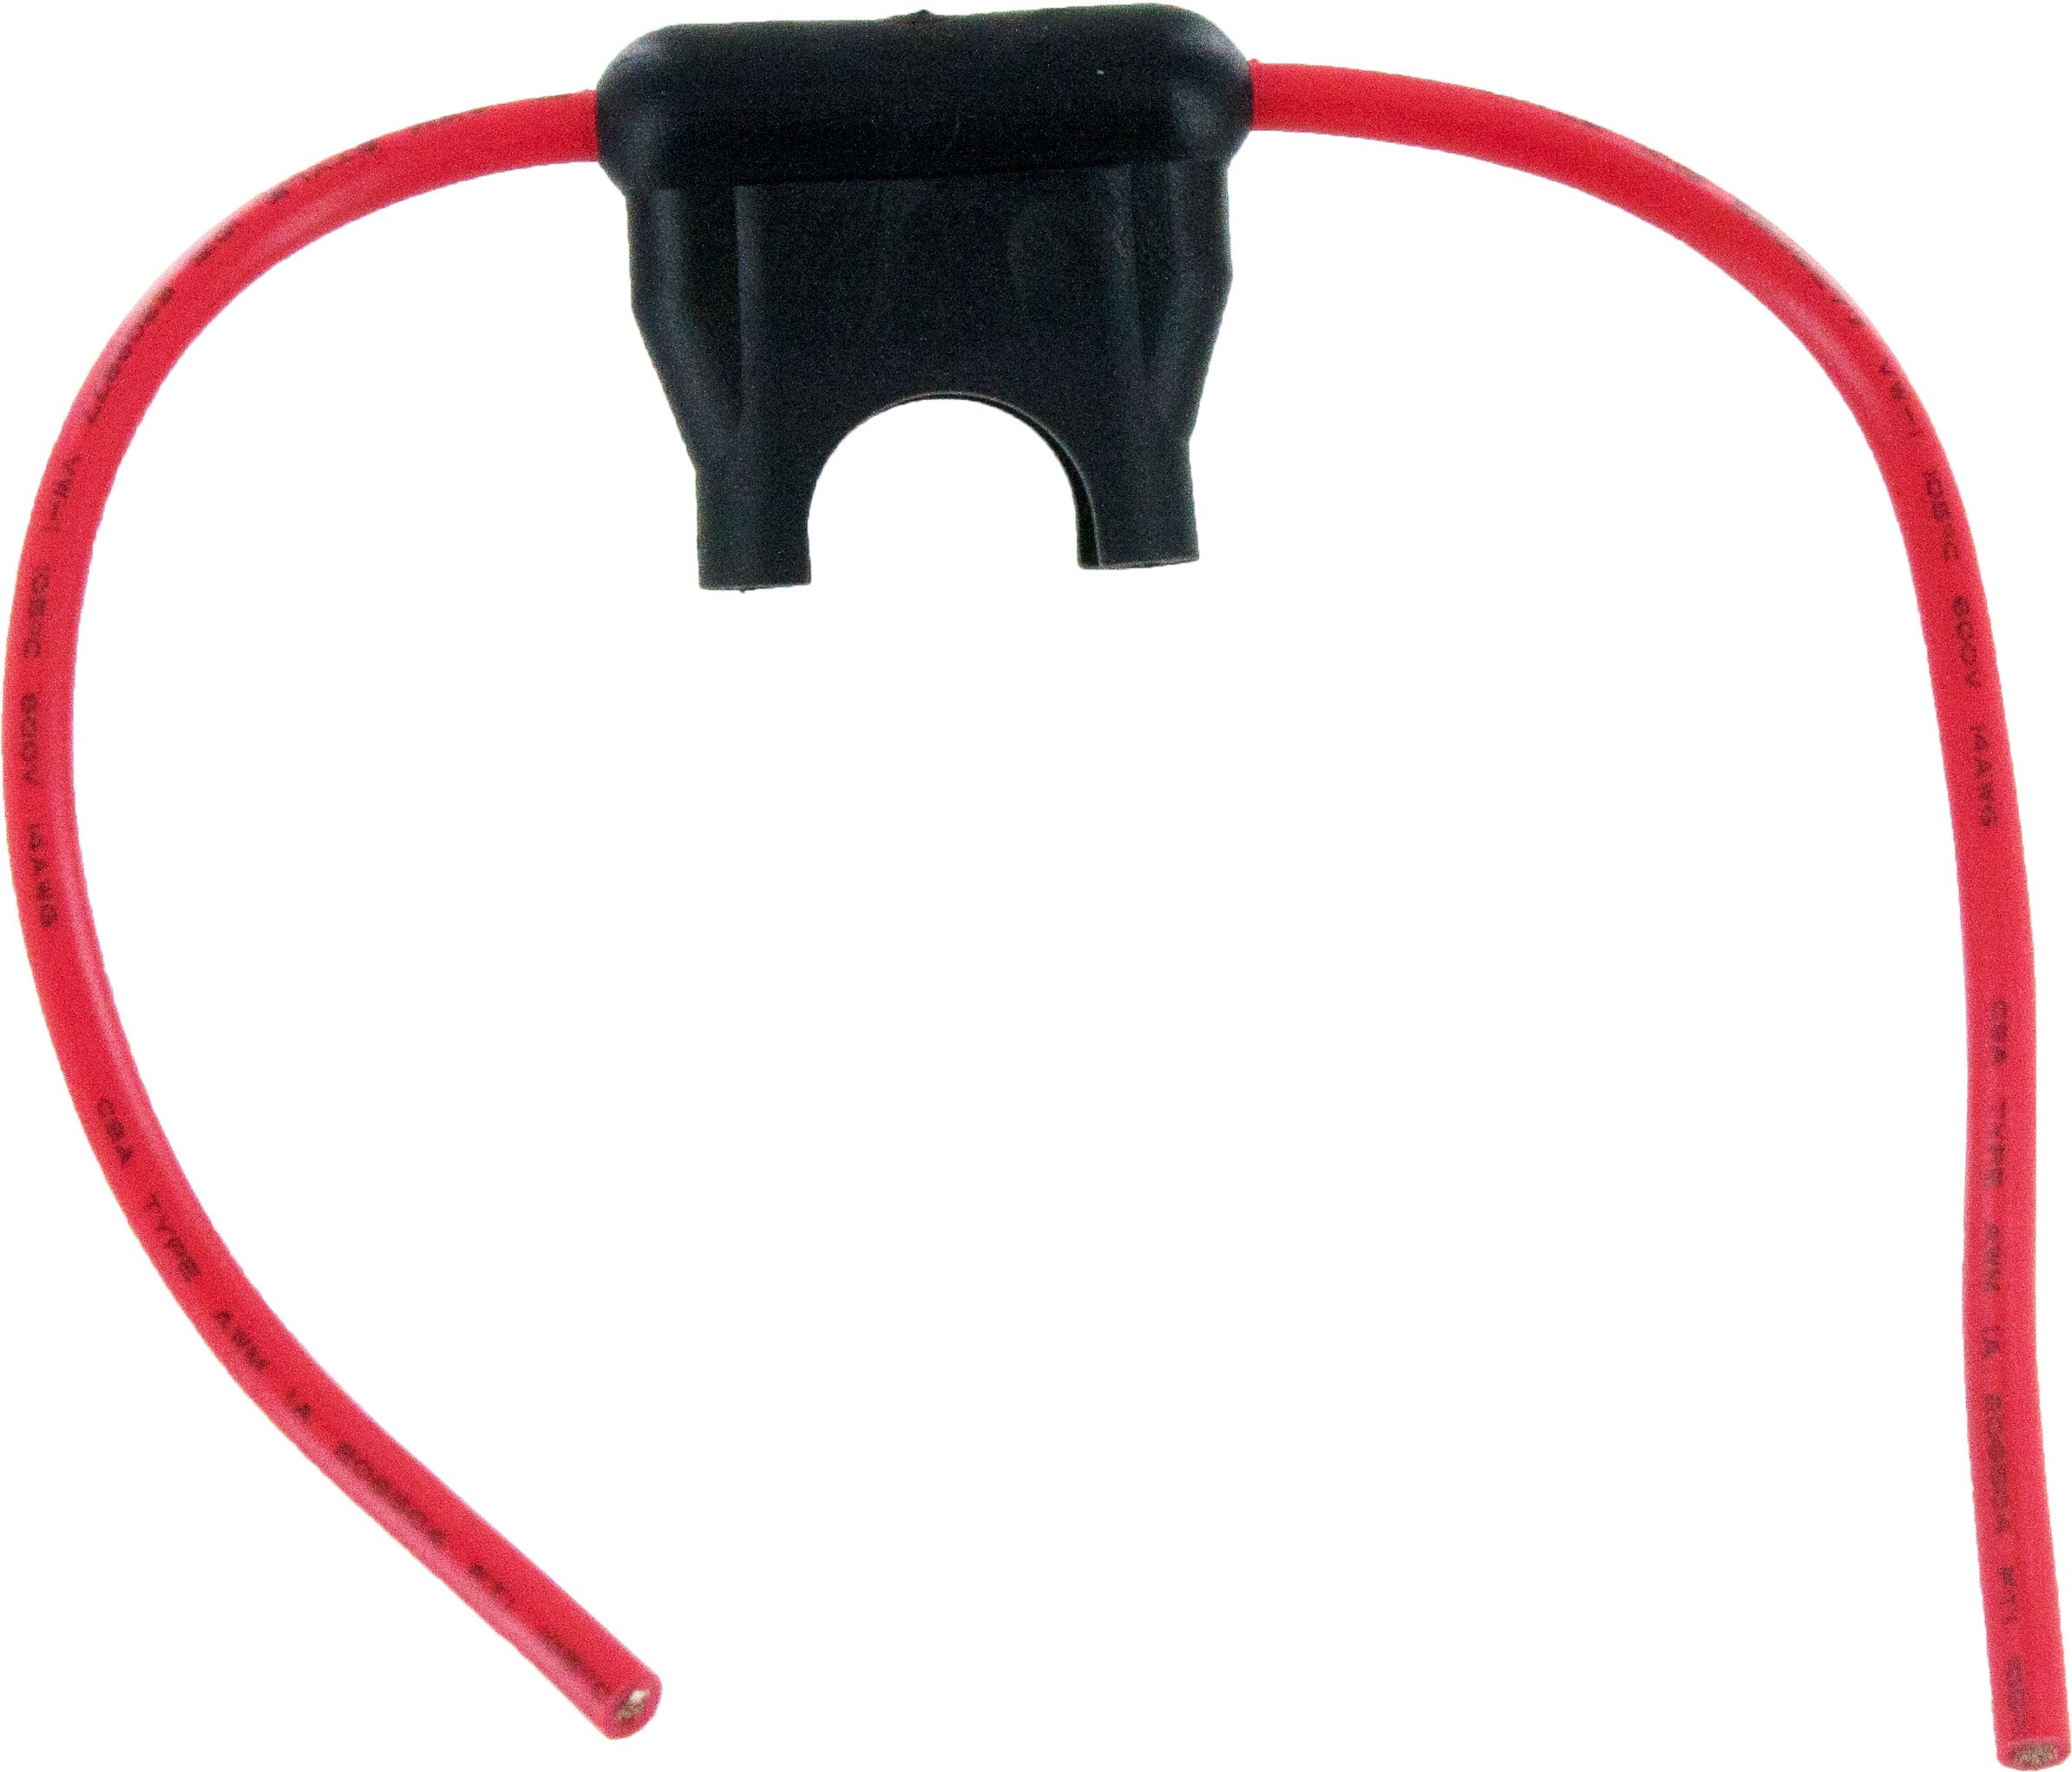 "In-Line Standard Blade Fuse Holder 14 Awg 4.5"" Leads Red 25 Pack"